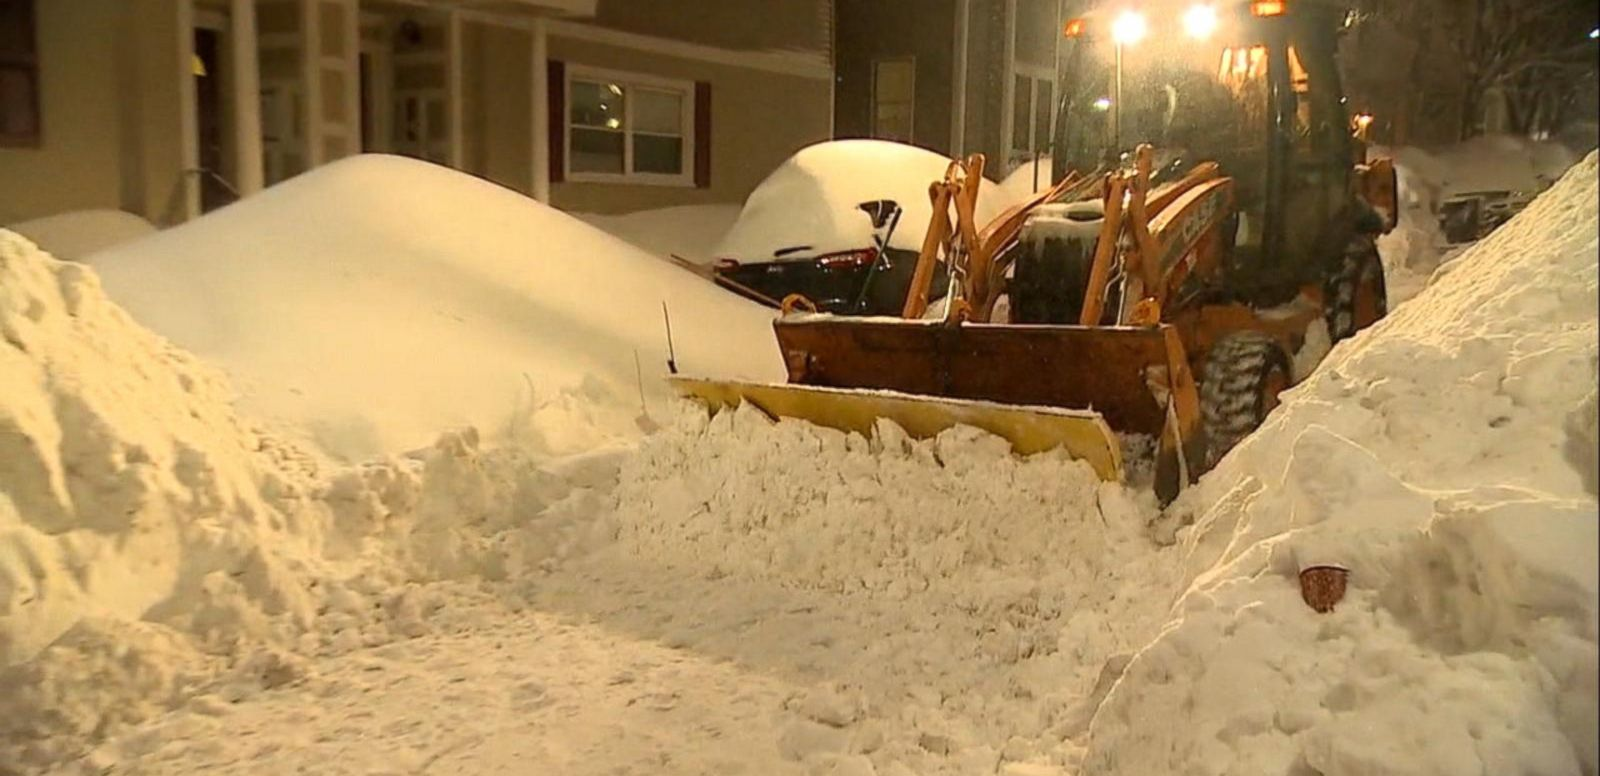 VIDEO: Boston Takes On More Snow, Nears Winter Record